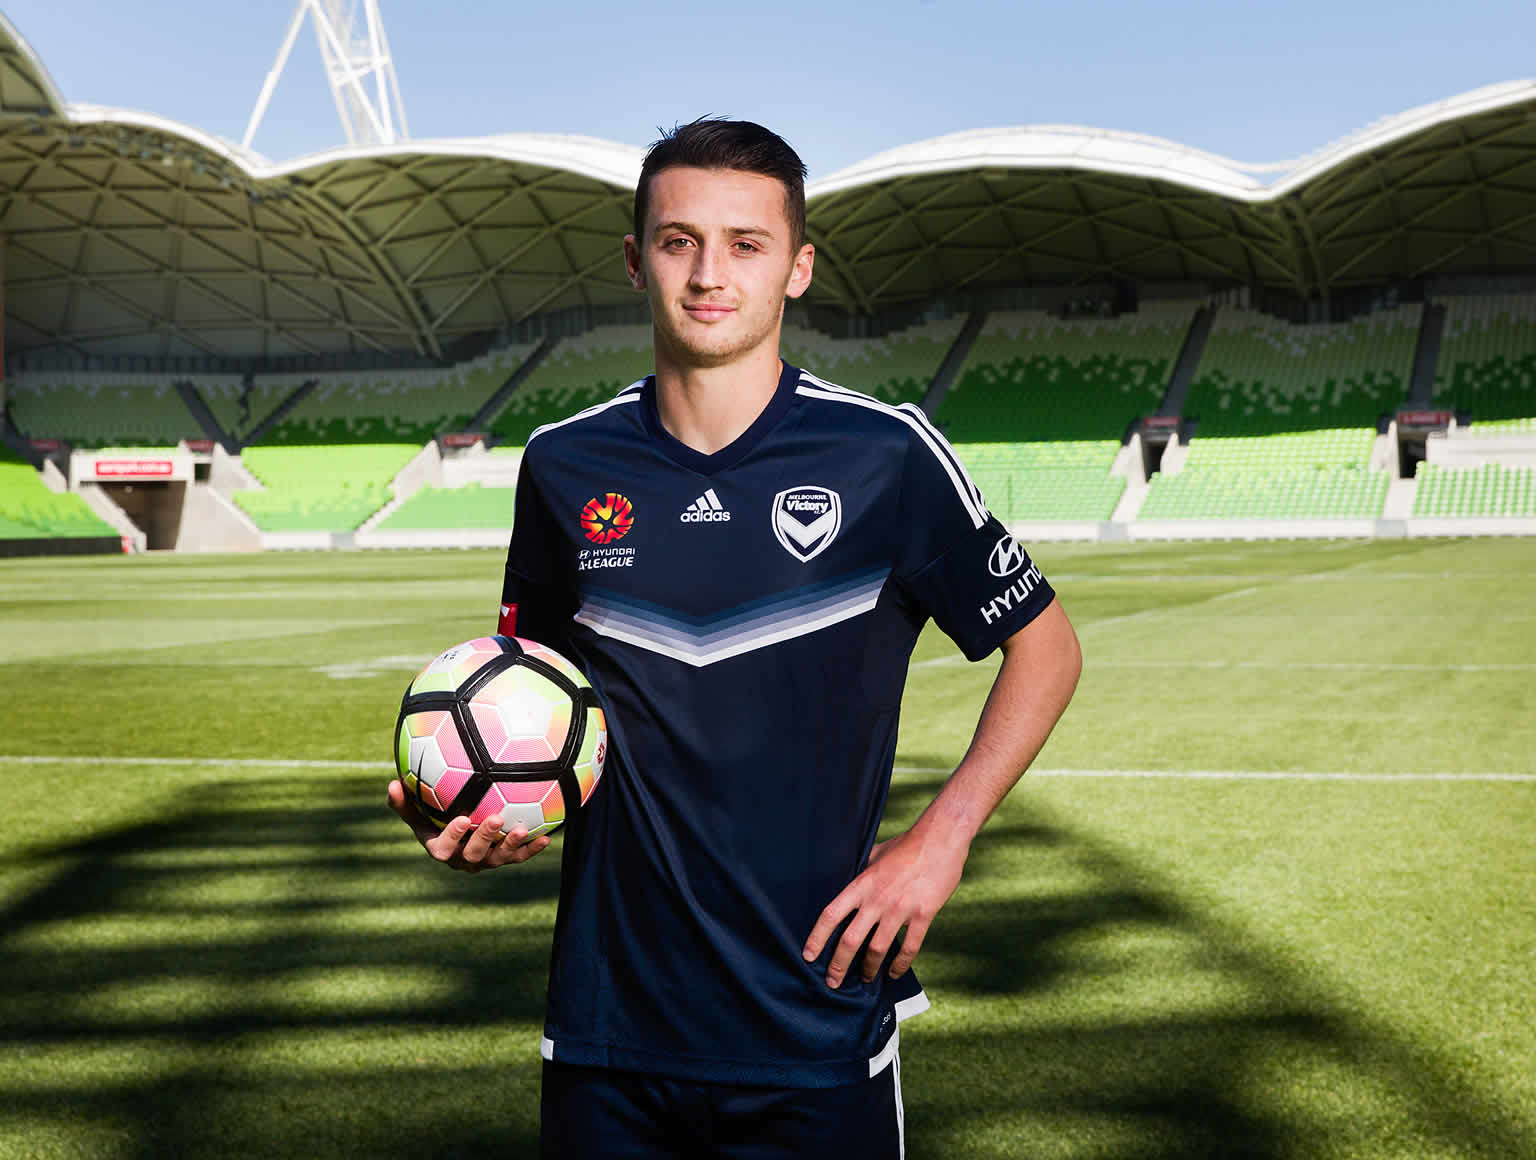 George Howard from Melbourne Victory, photo: Paul Jeffers